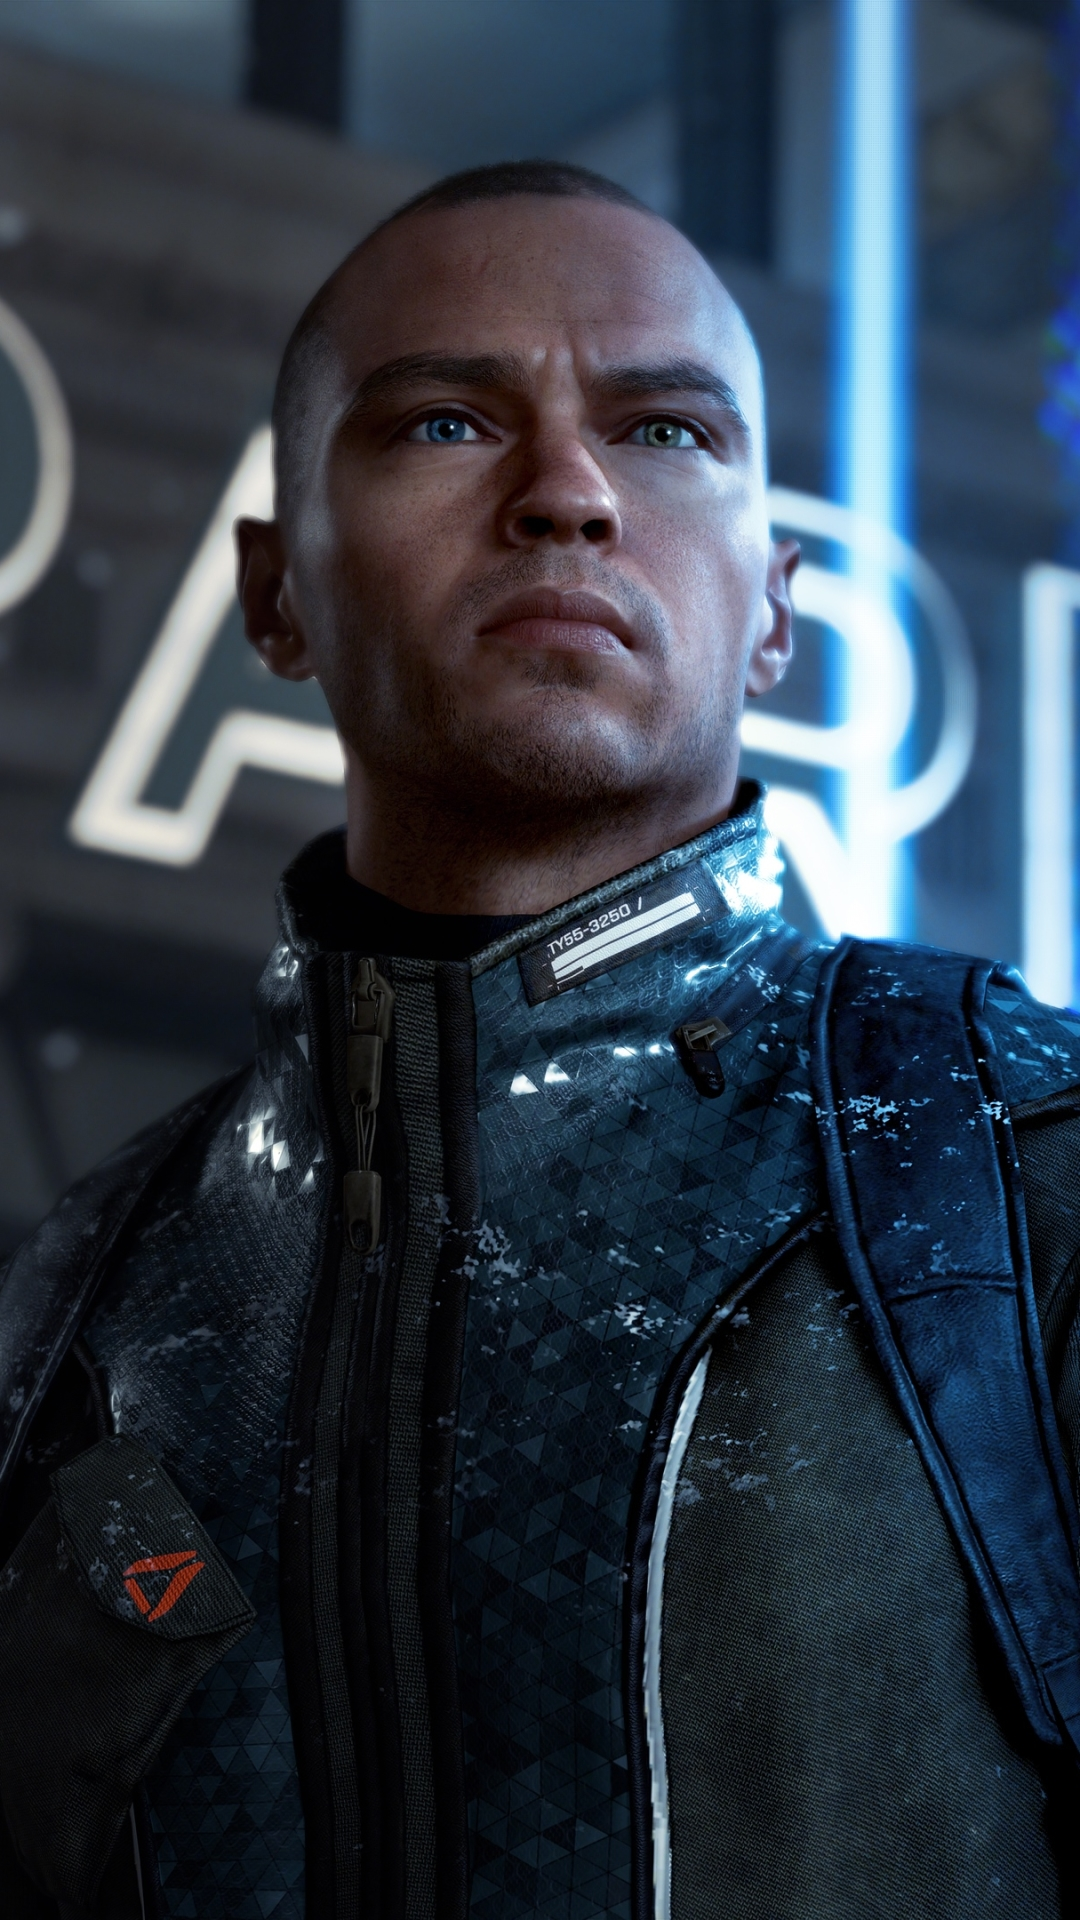 Video Game Detroit Become Human 1080x1920 Wallpaper Id 726470